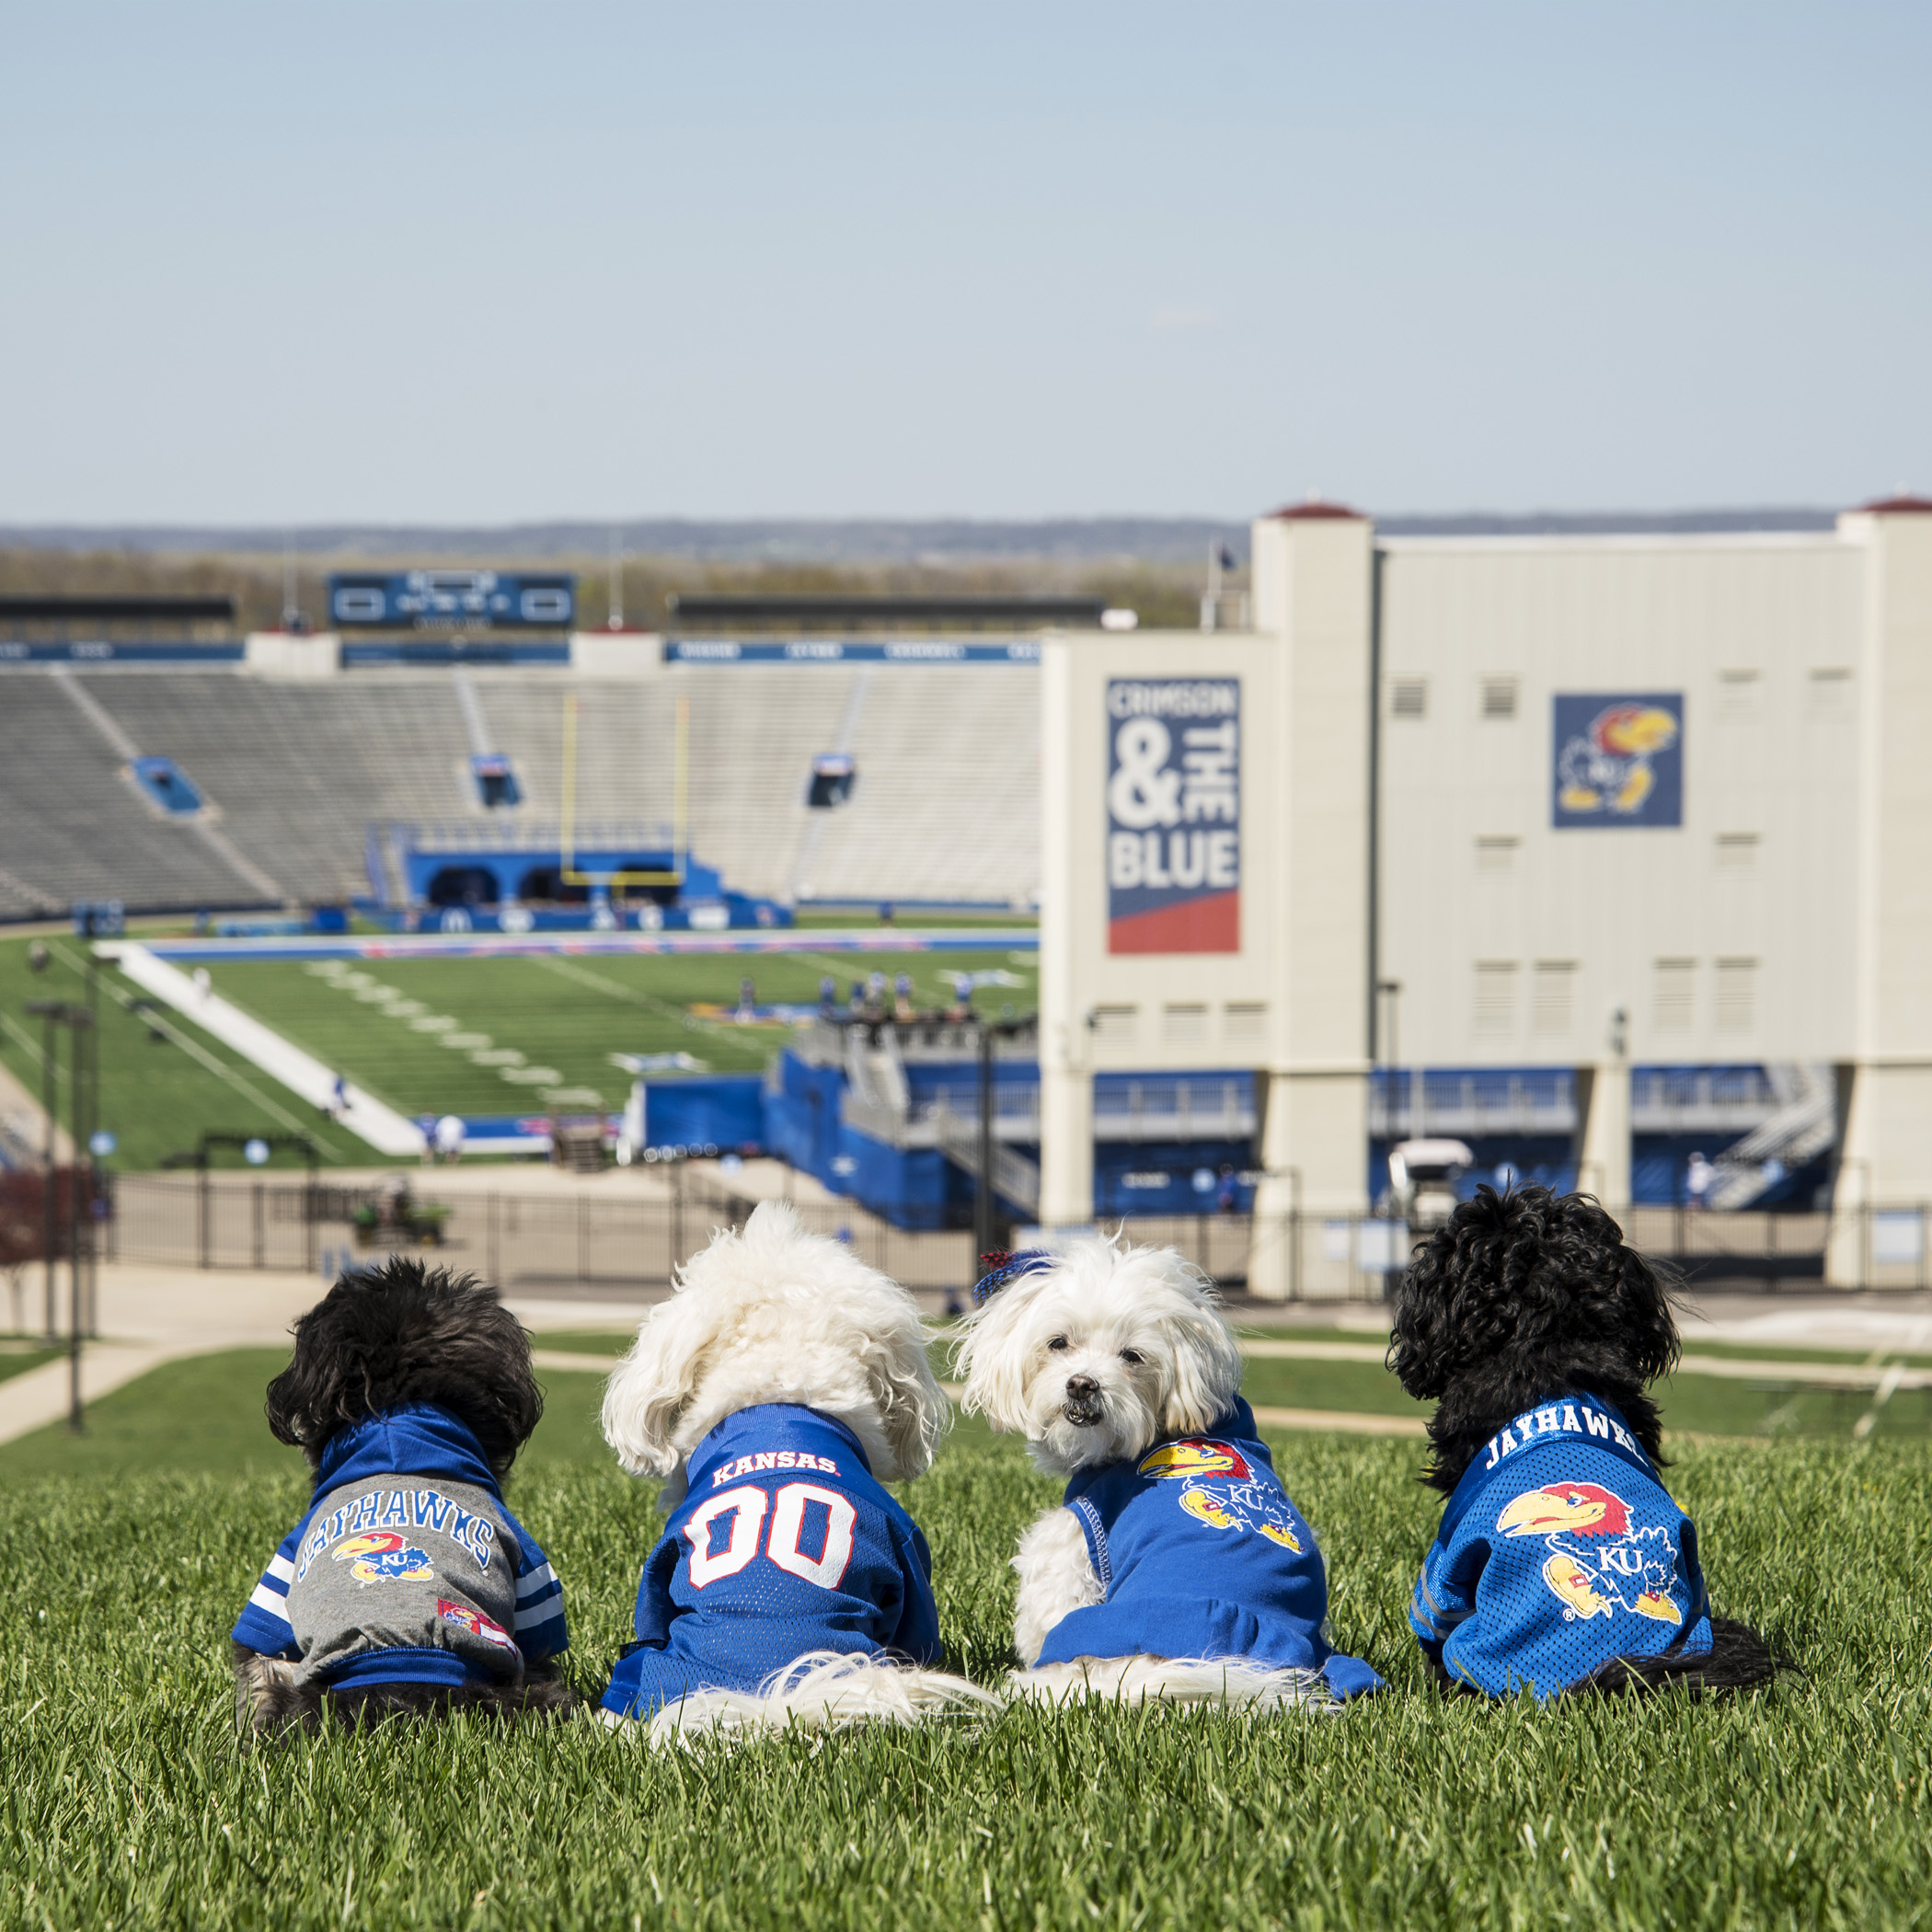 Hey, Mom, can we get any closer, so I can get a better look at all the cute football players?